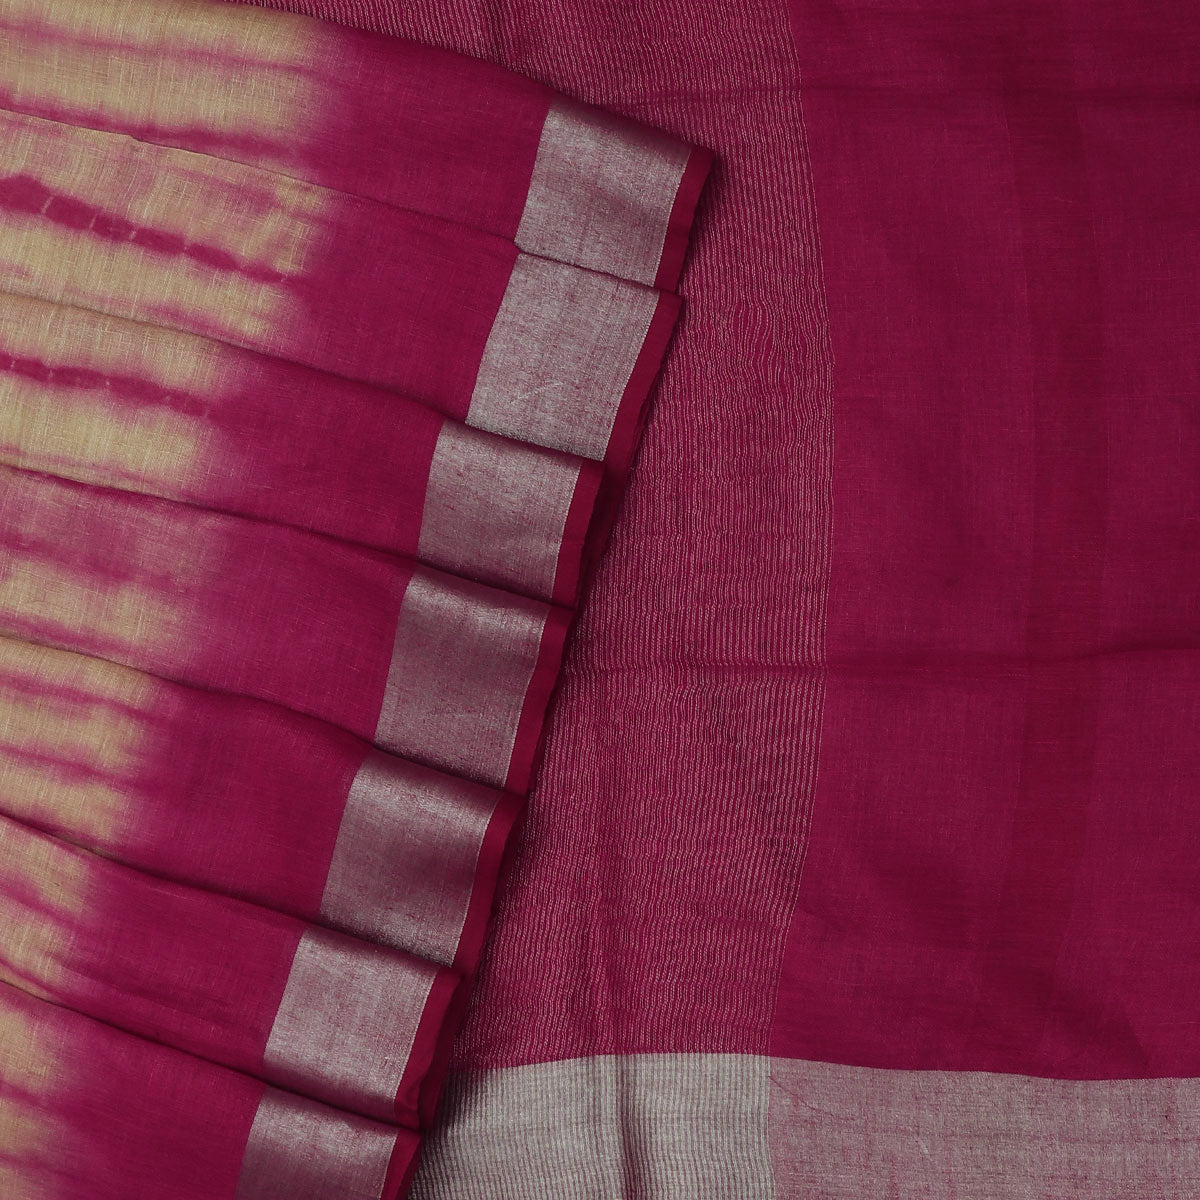 Pure Linen Saree Sandal and Magenta with Silver border